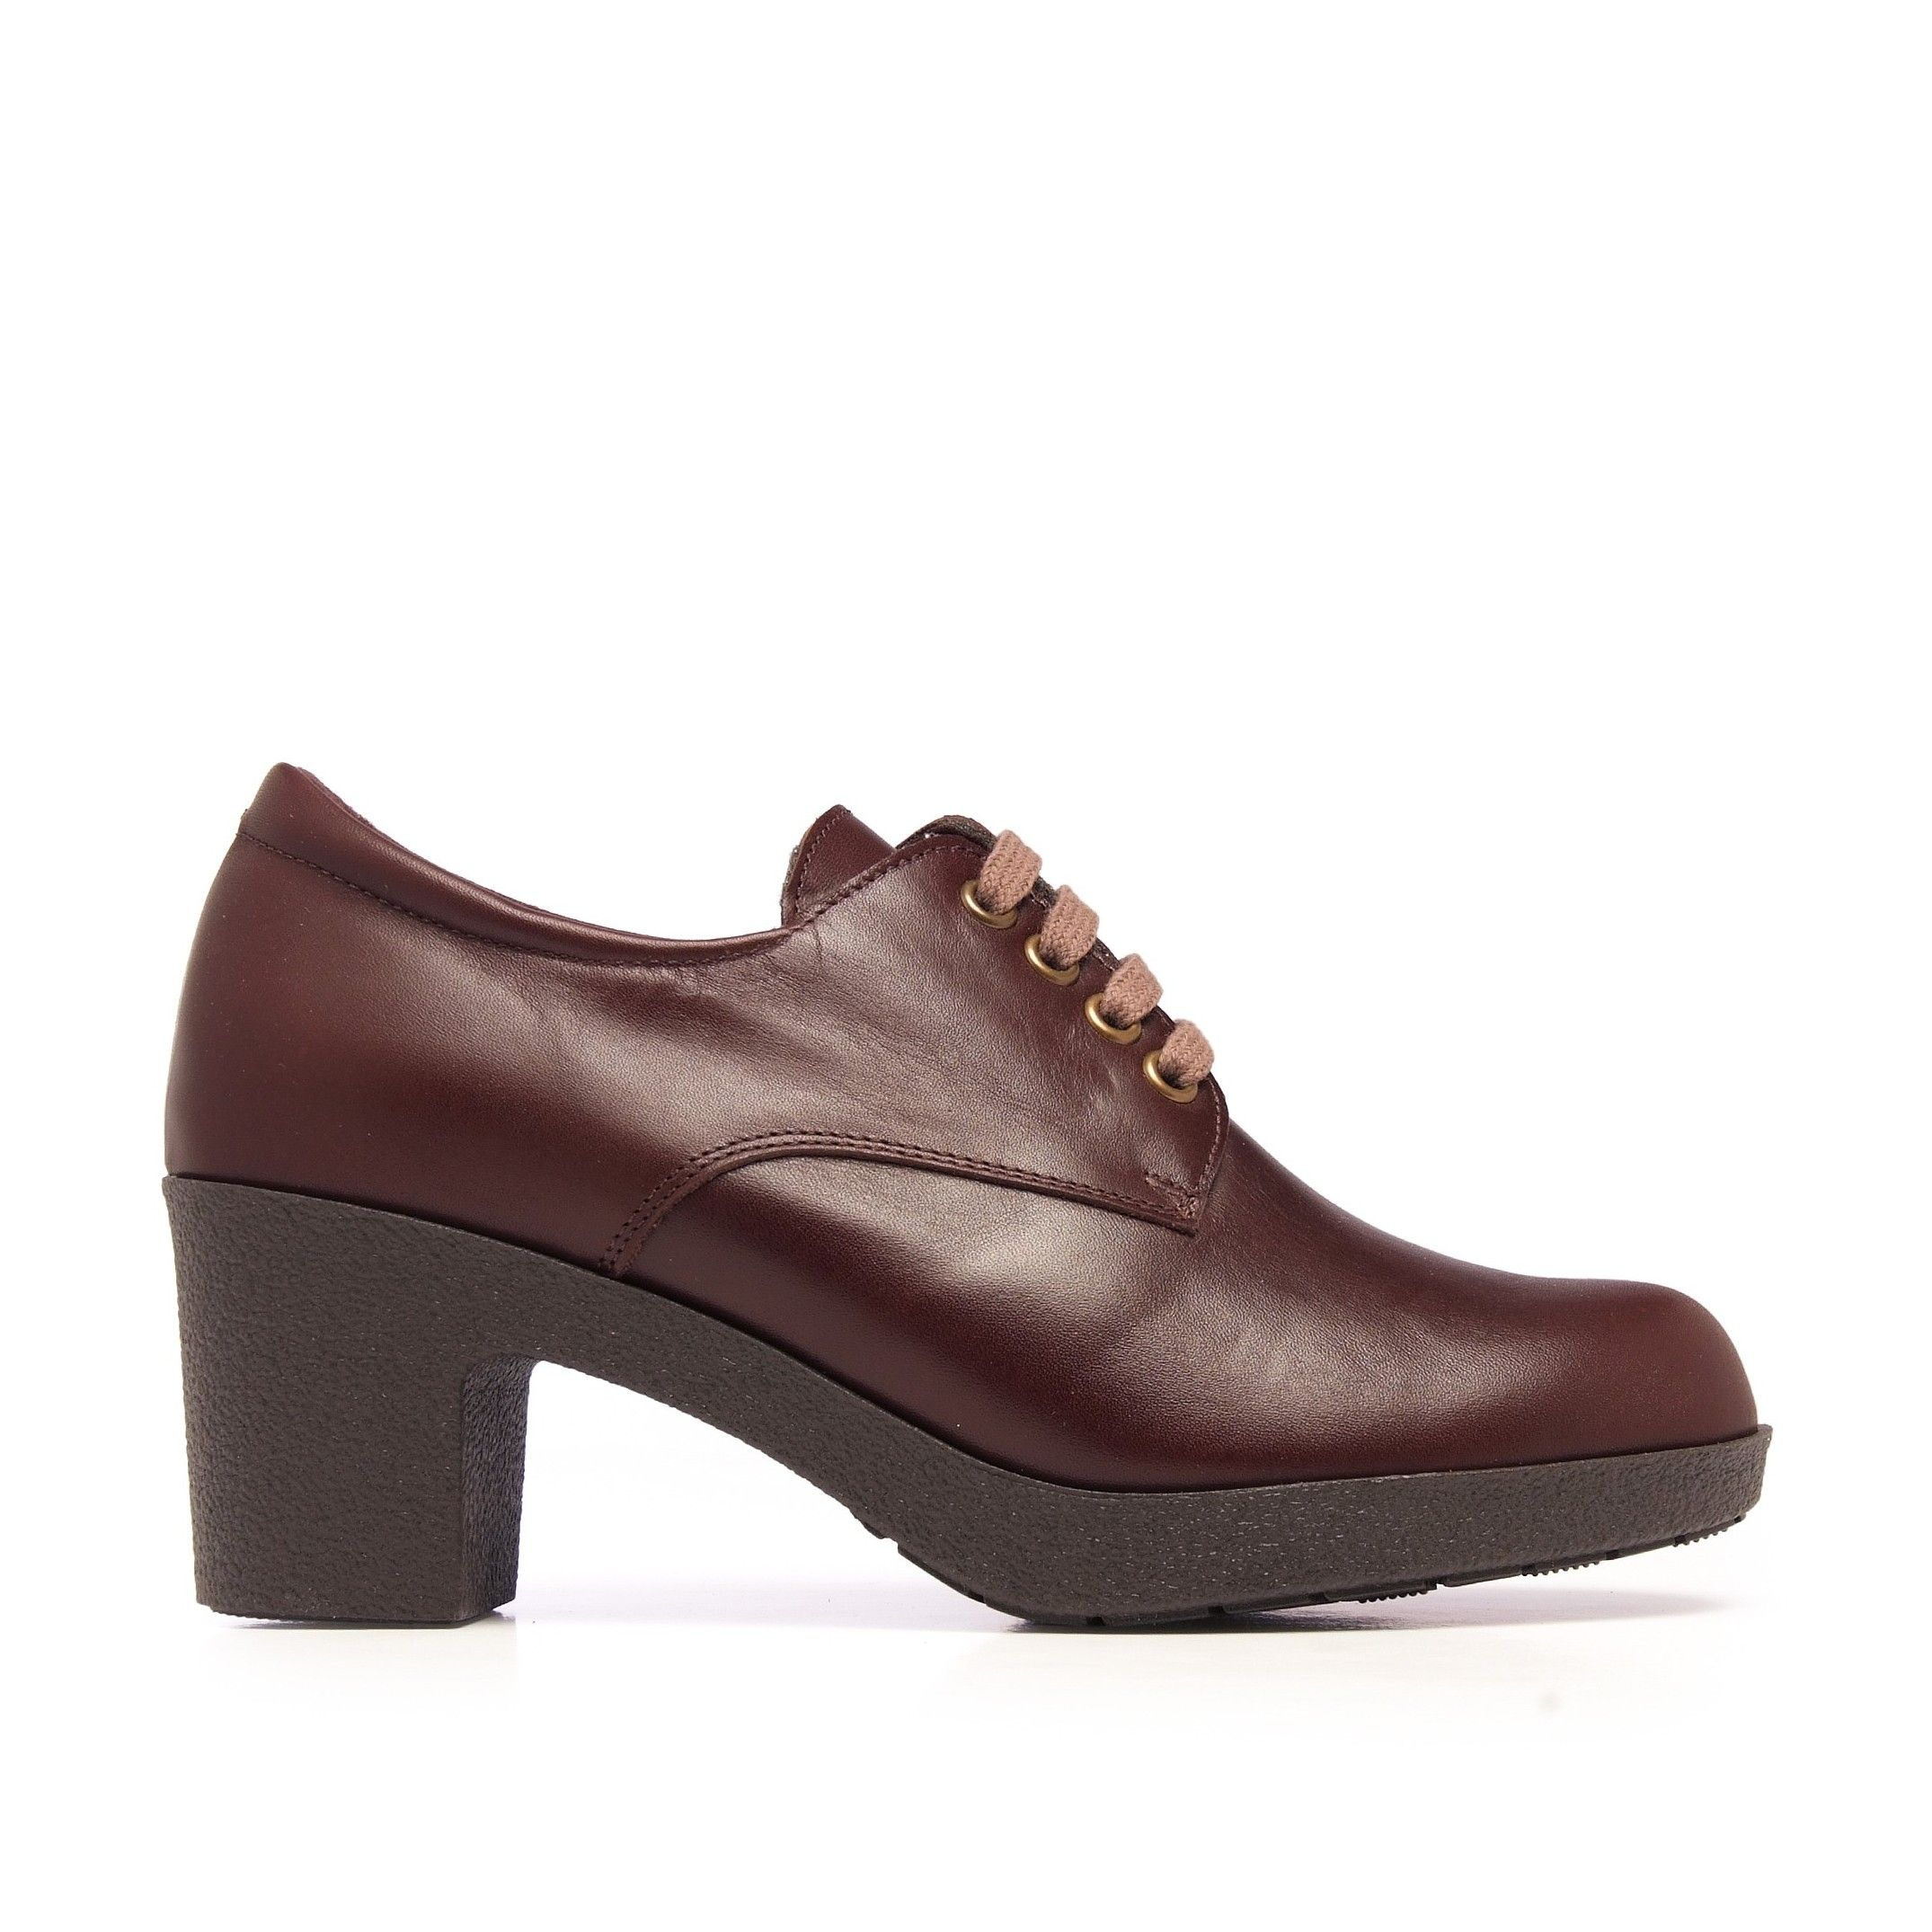 Castellanisimos Leather Women Brown Blucher Shoes Laces